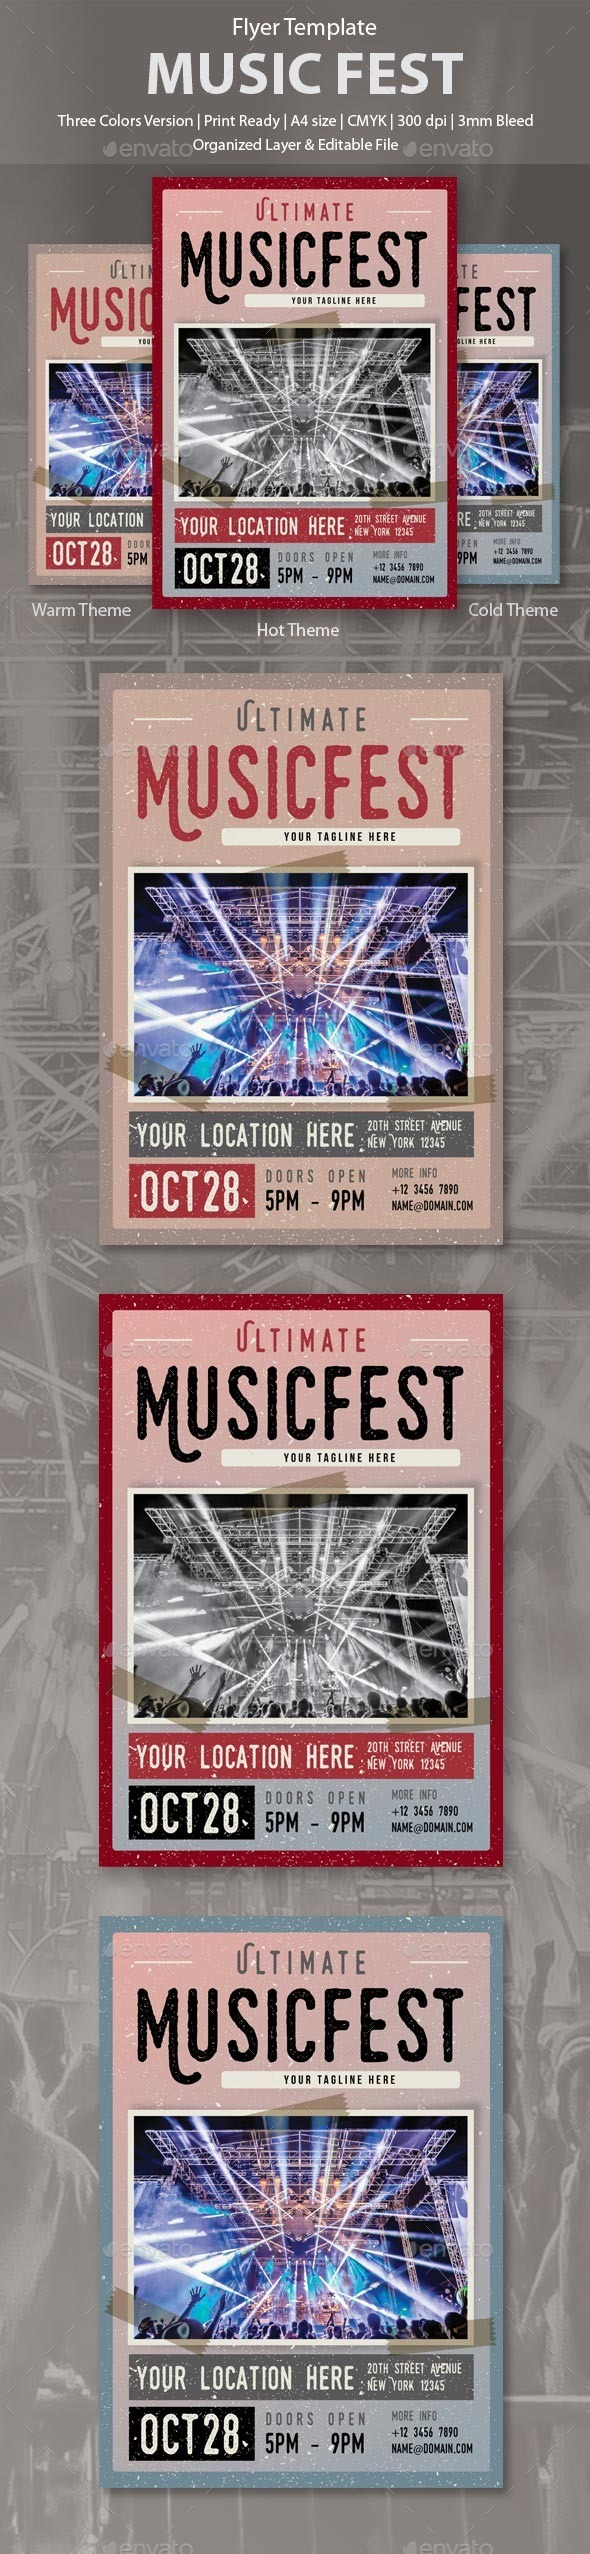 MusicFest Flyer Template - Concerts Events